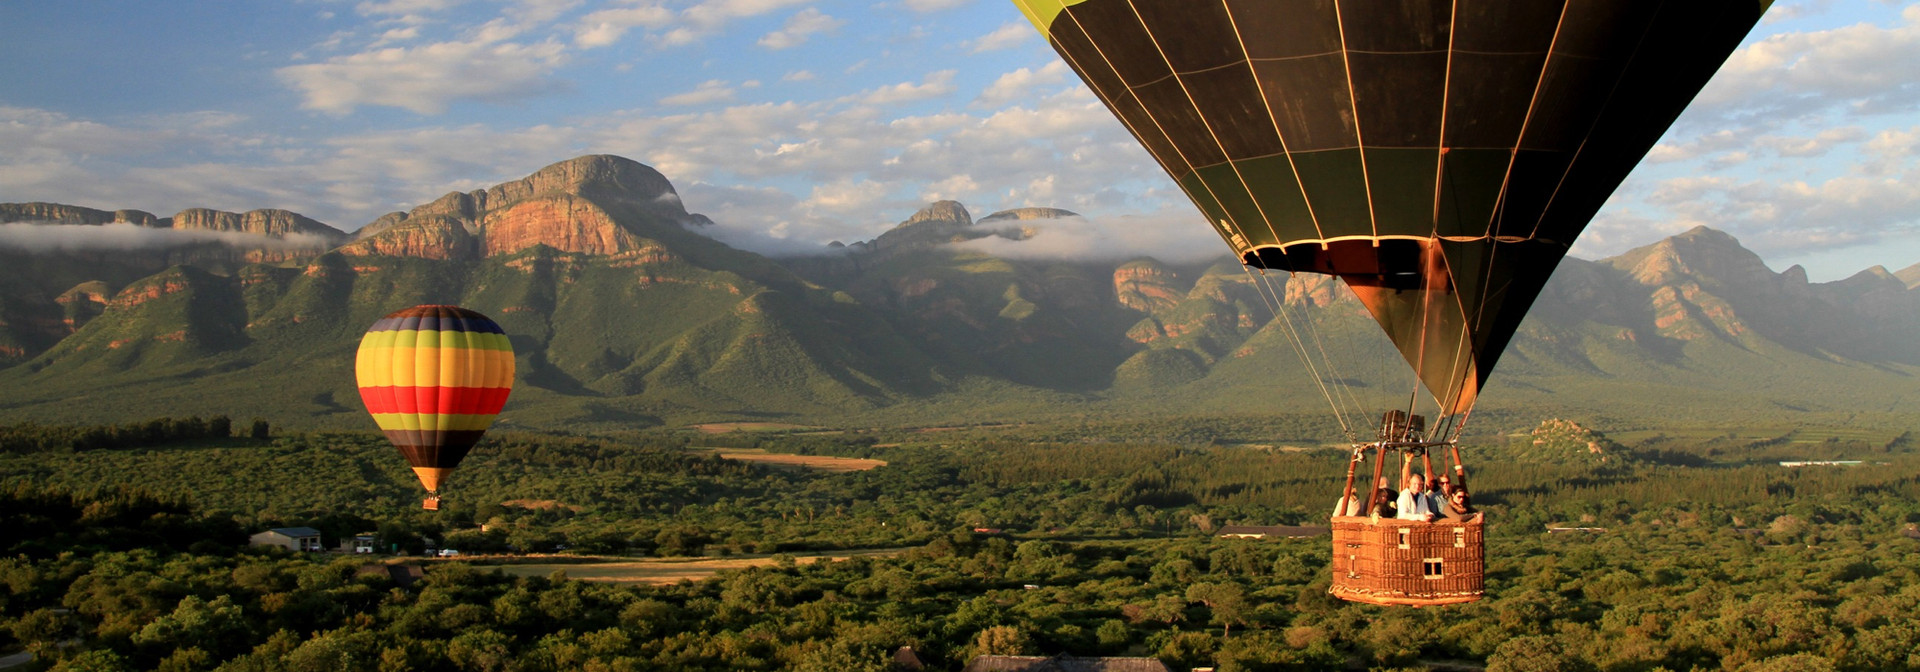 Hotair balloon safari